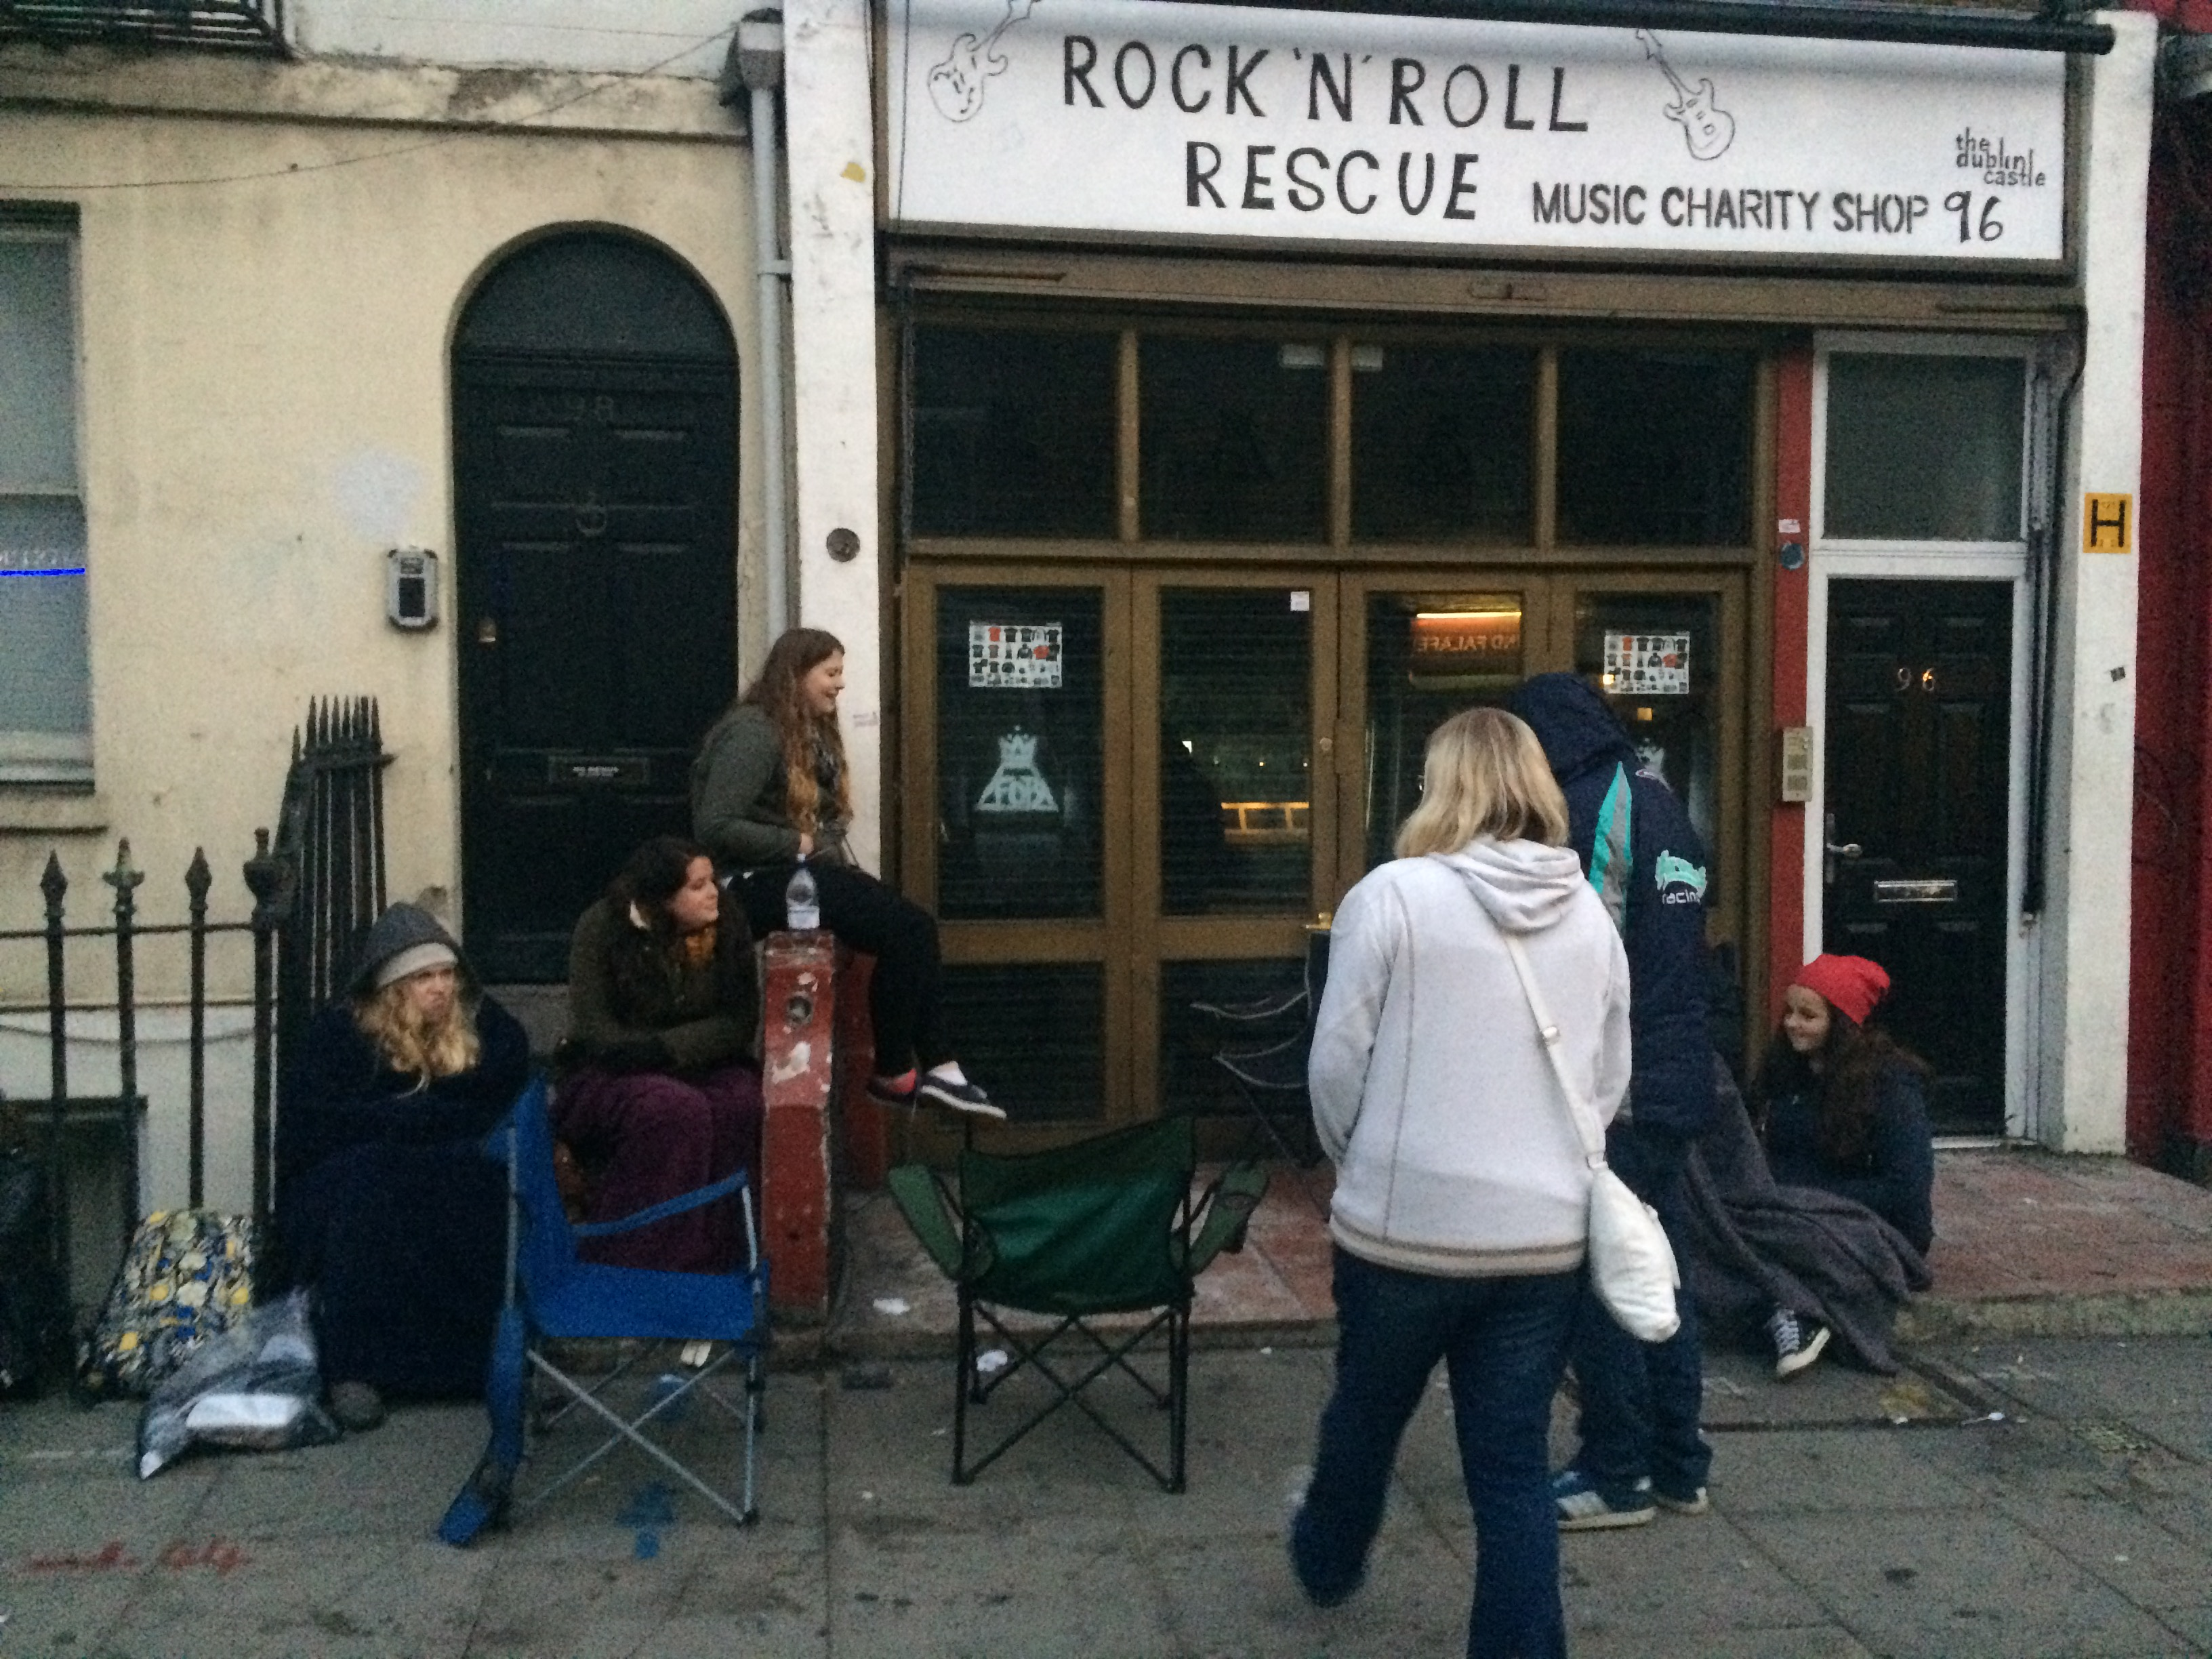 Queue Fall Out Boy Pop Up Shop London October 2015 to meet Pete Wentz